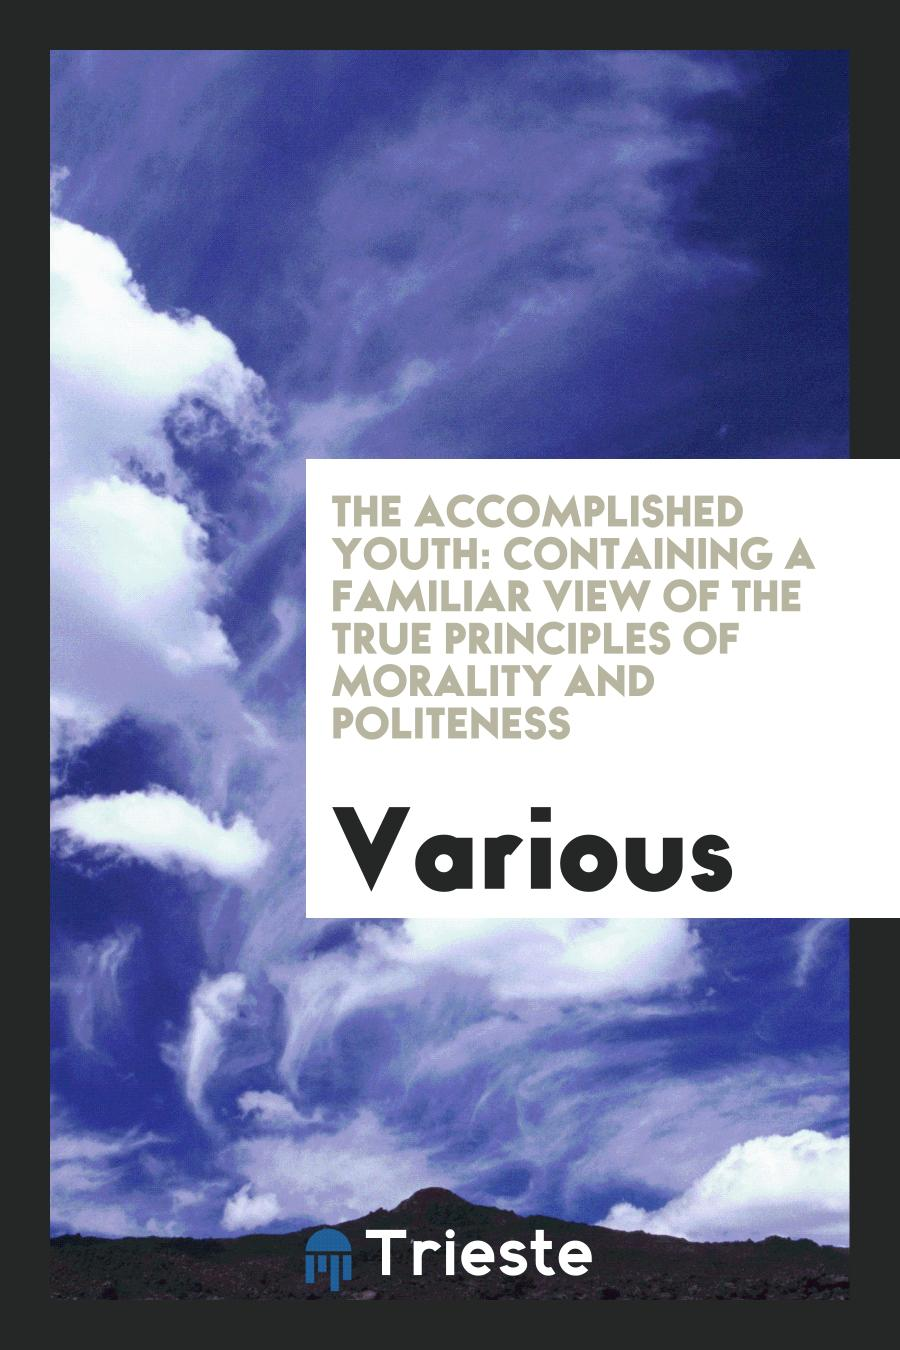 The accomplished youth: containing a familiar view of the true principles of morality and politeness